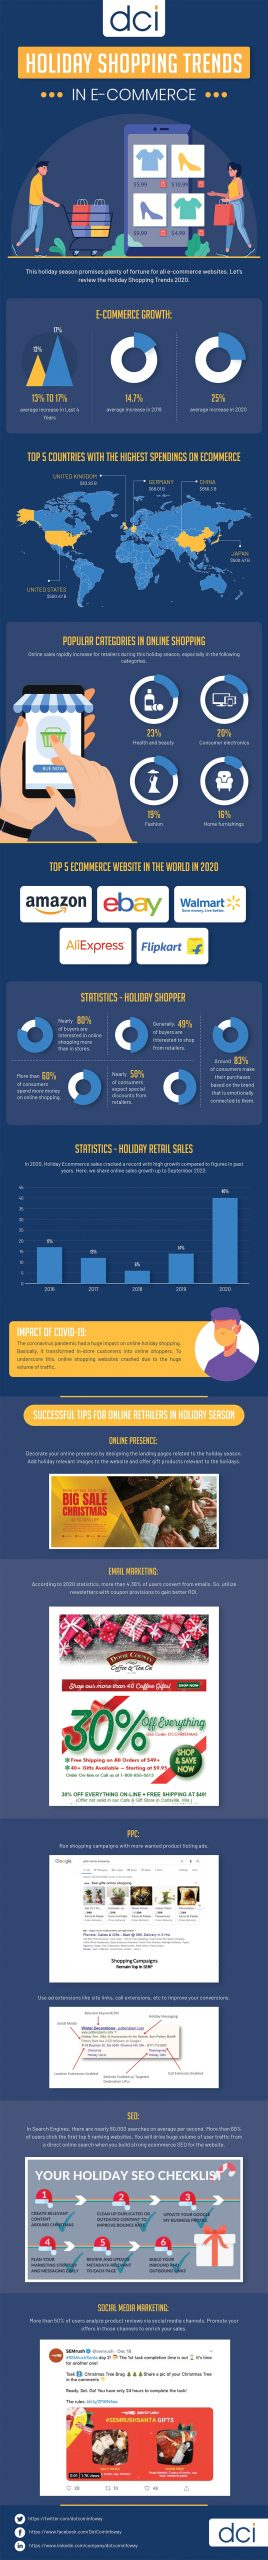 Holiday Shopping Trends 2020 in E-commerce [Infographic]